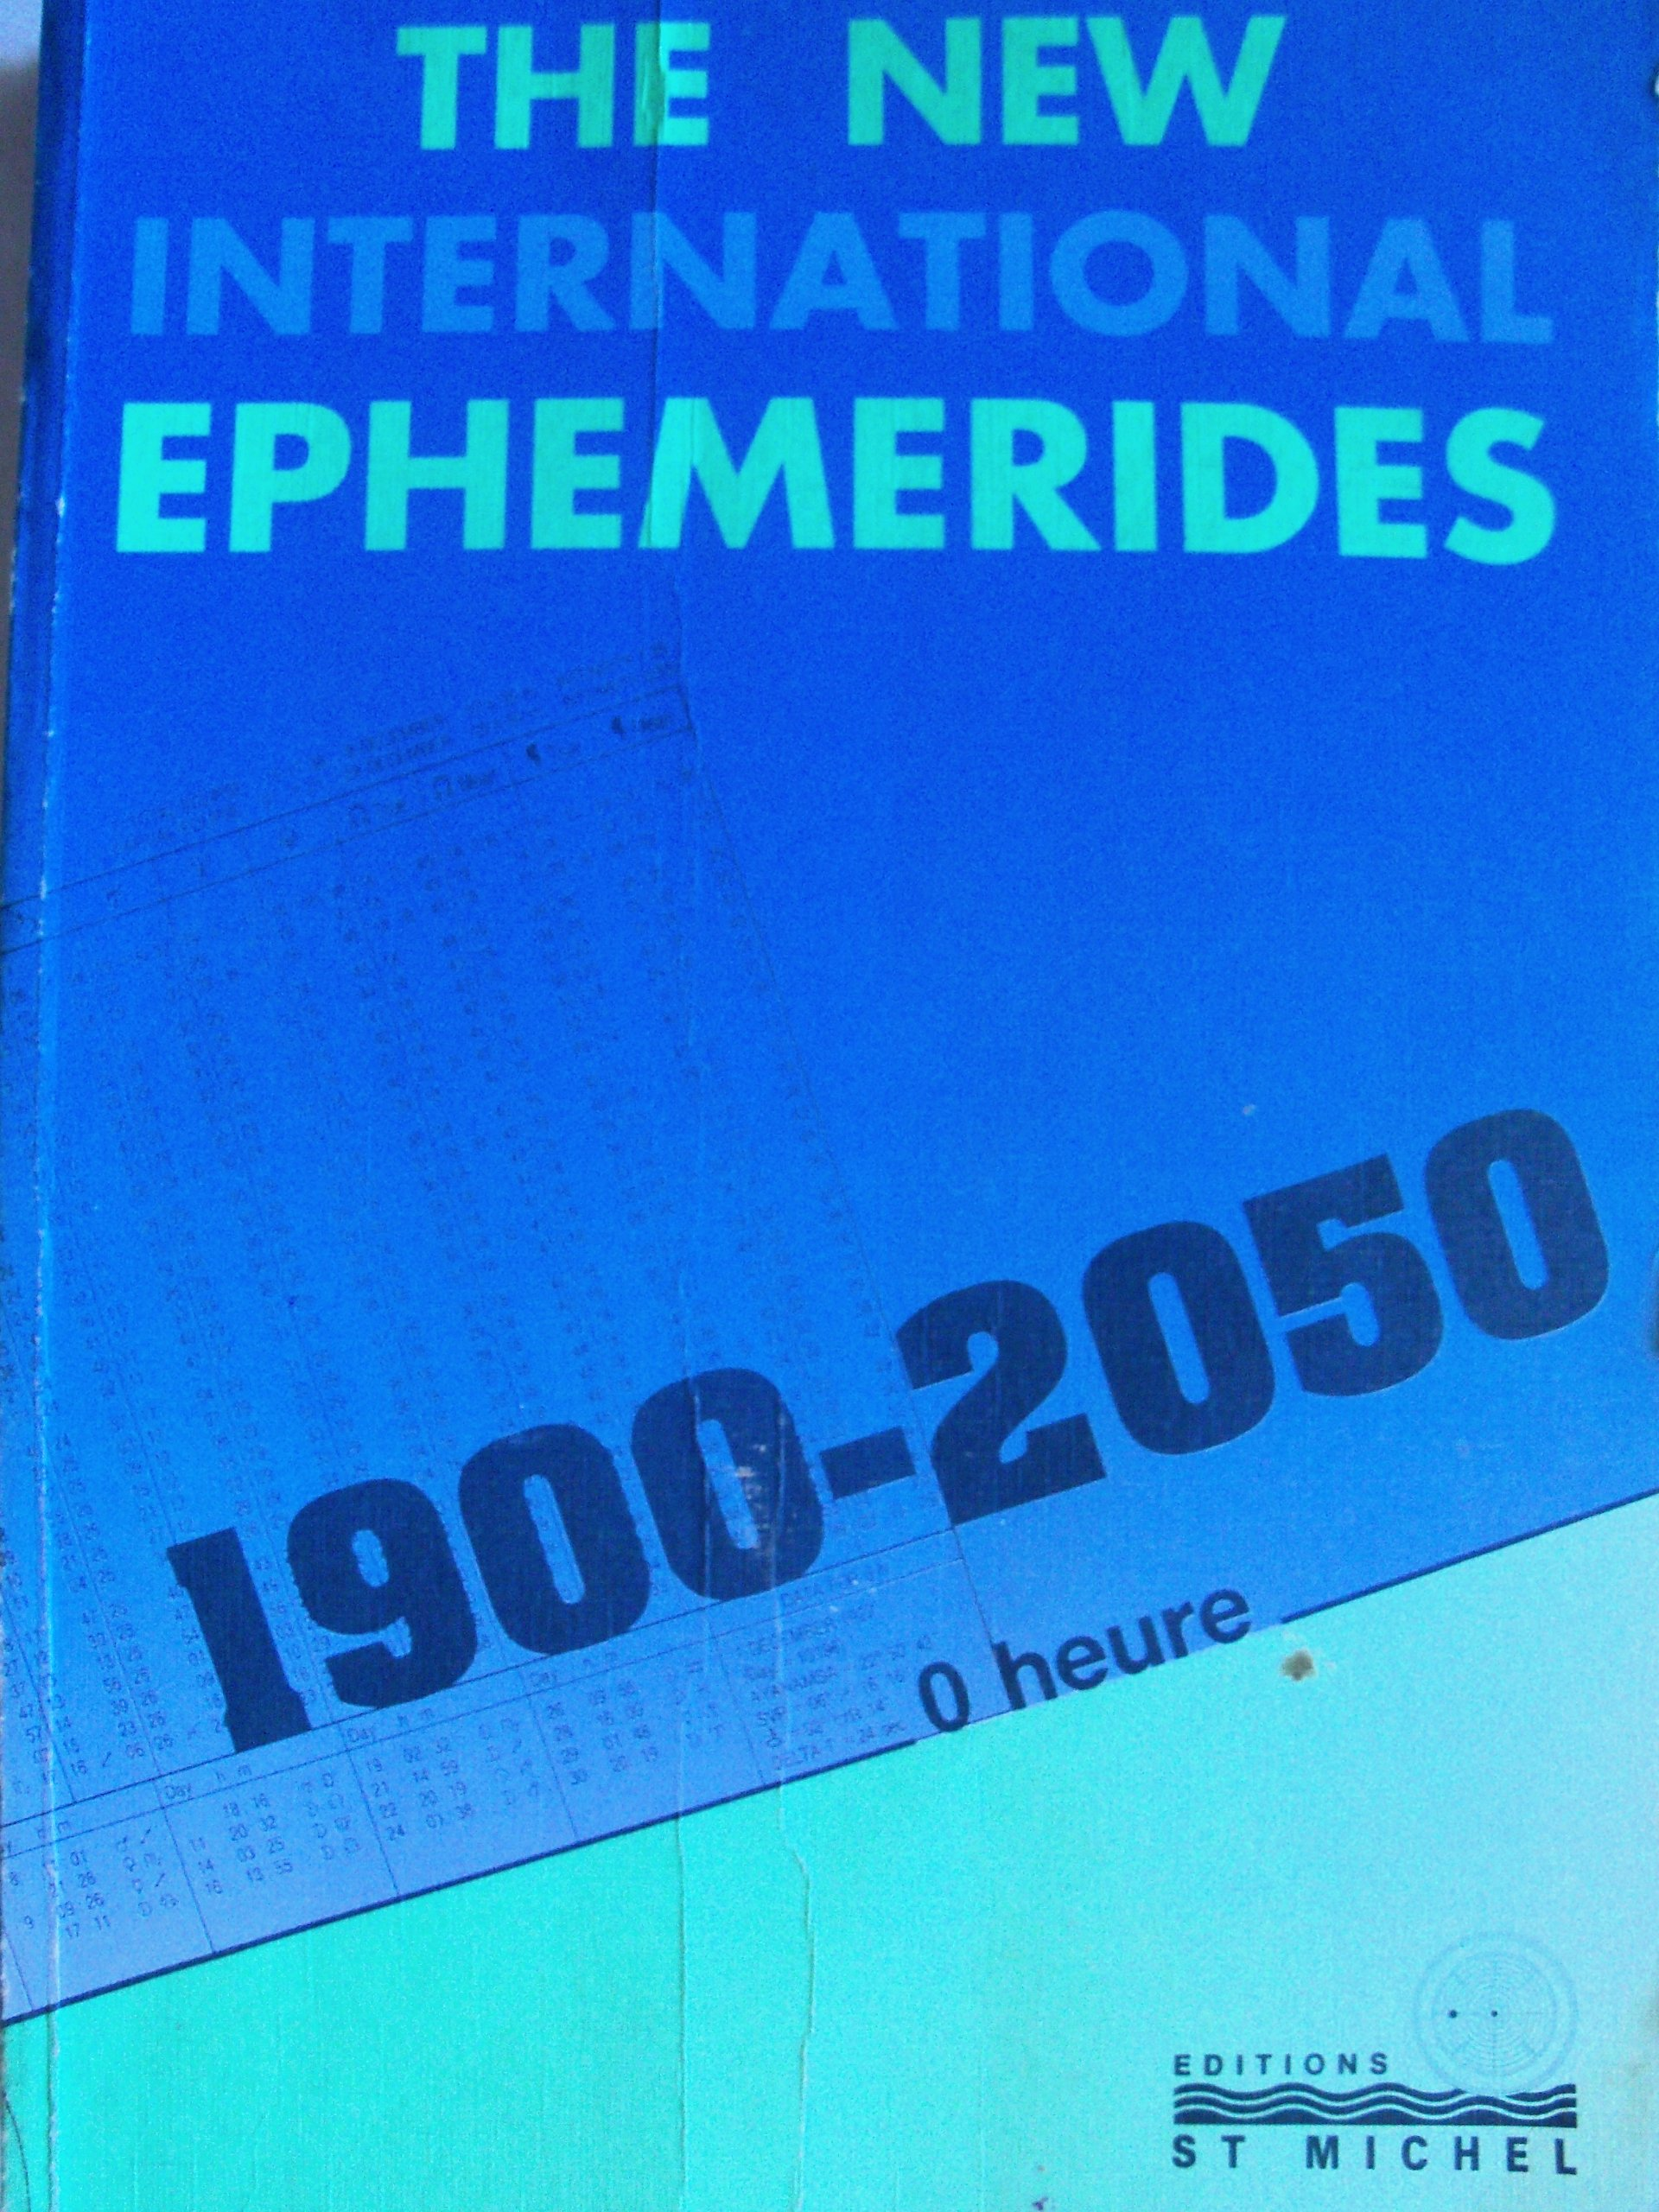 The New International Ephemerides, 1900-2050